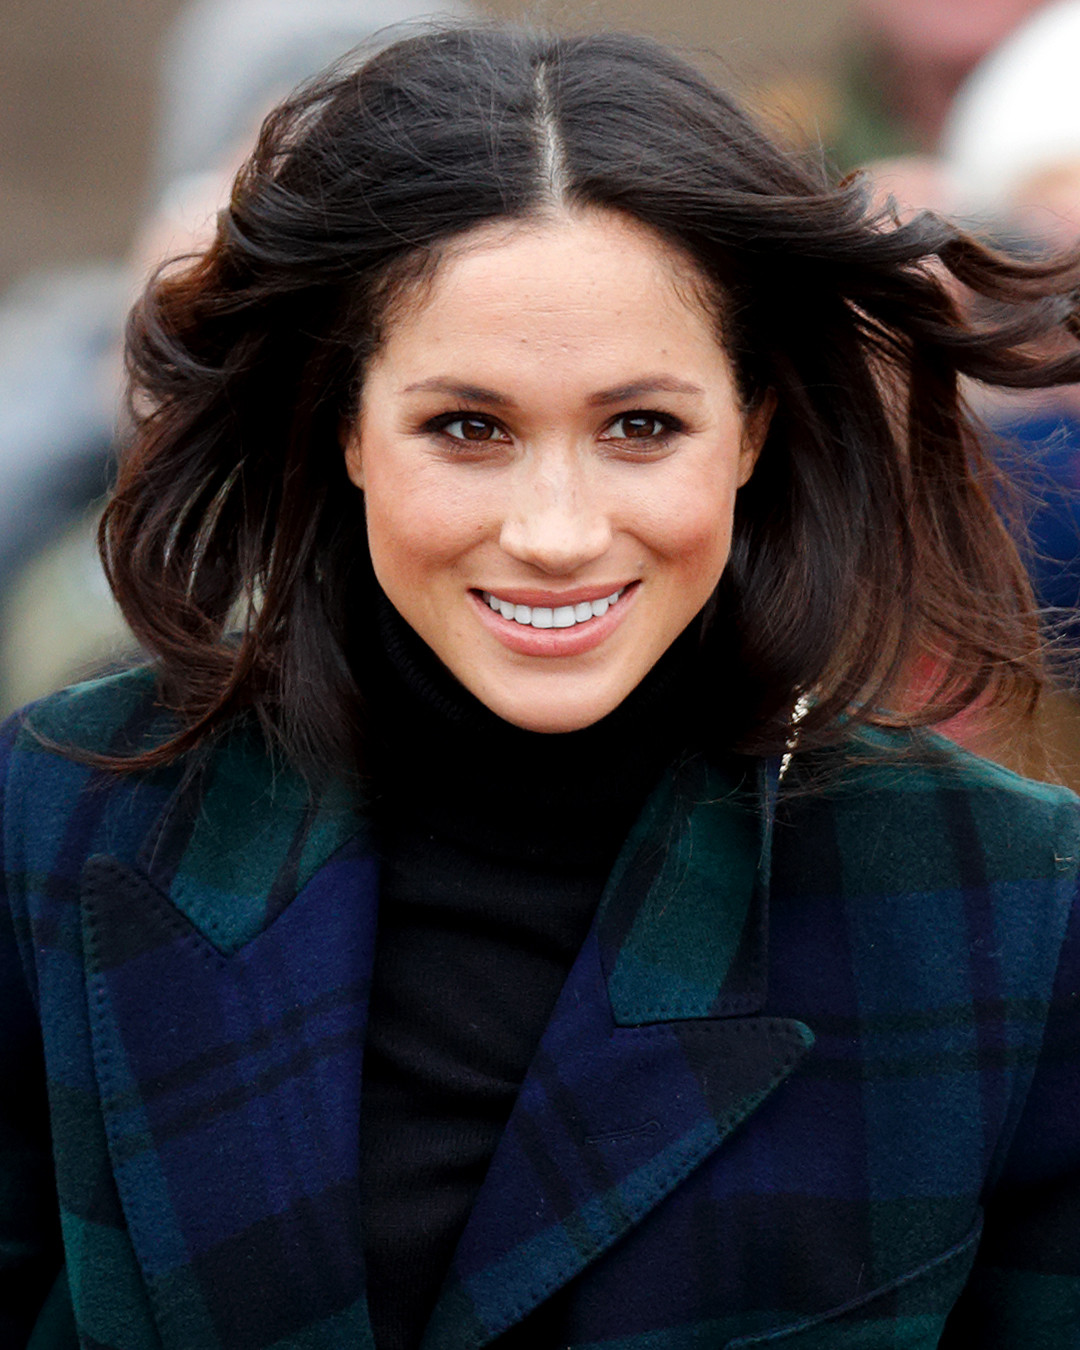 Meghan Markle's Signature Waves Are Easier To Do Than You